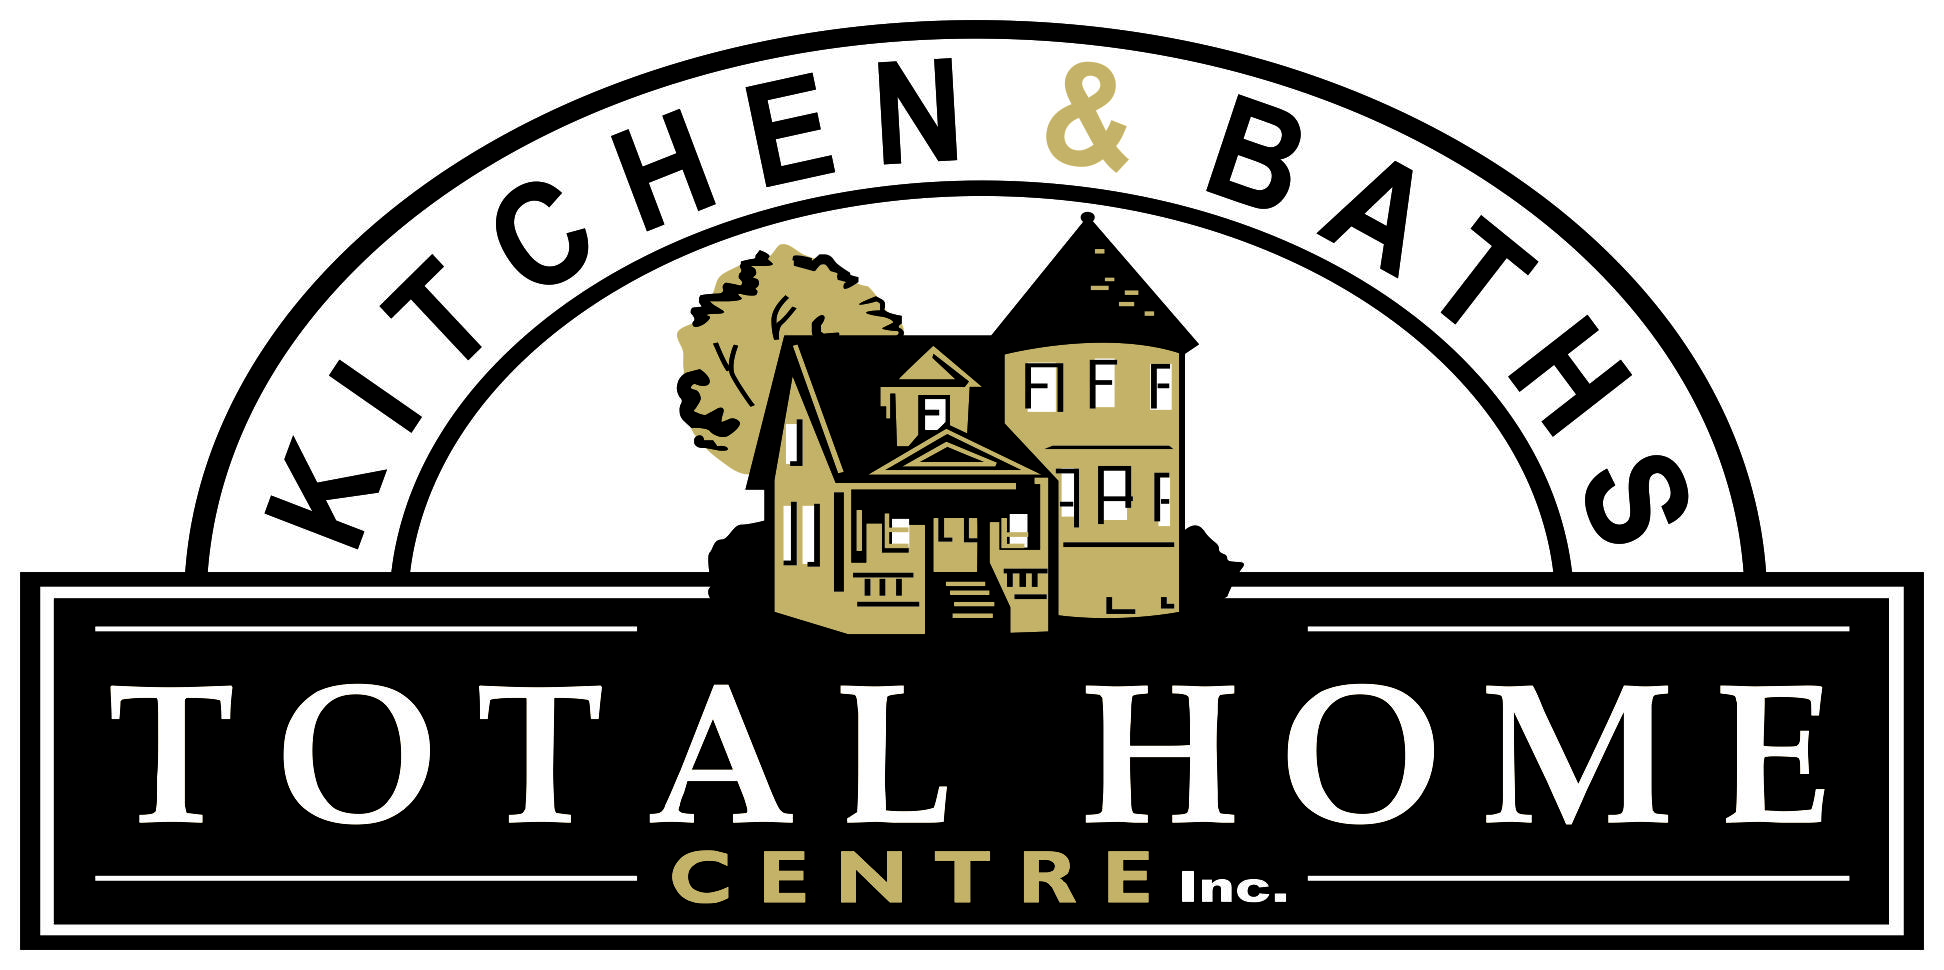 Kitchen & Baths Total Home Centre - Sudbury, ON P3A 4V4 - (705)560-5222 | ShowMeLocal.com